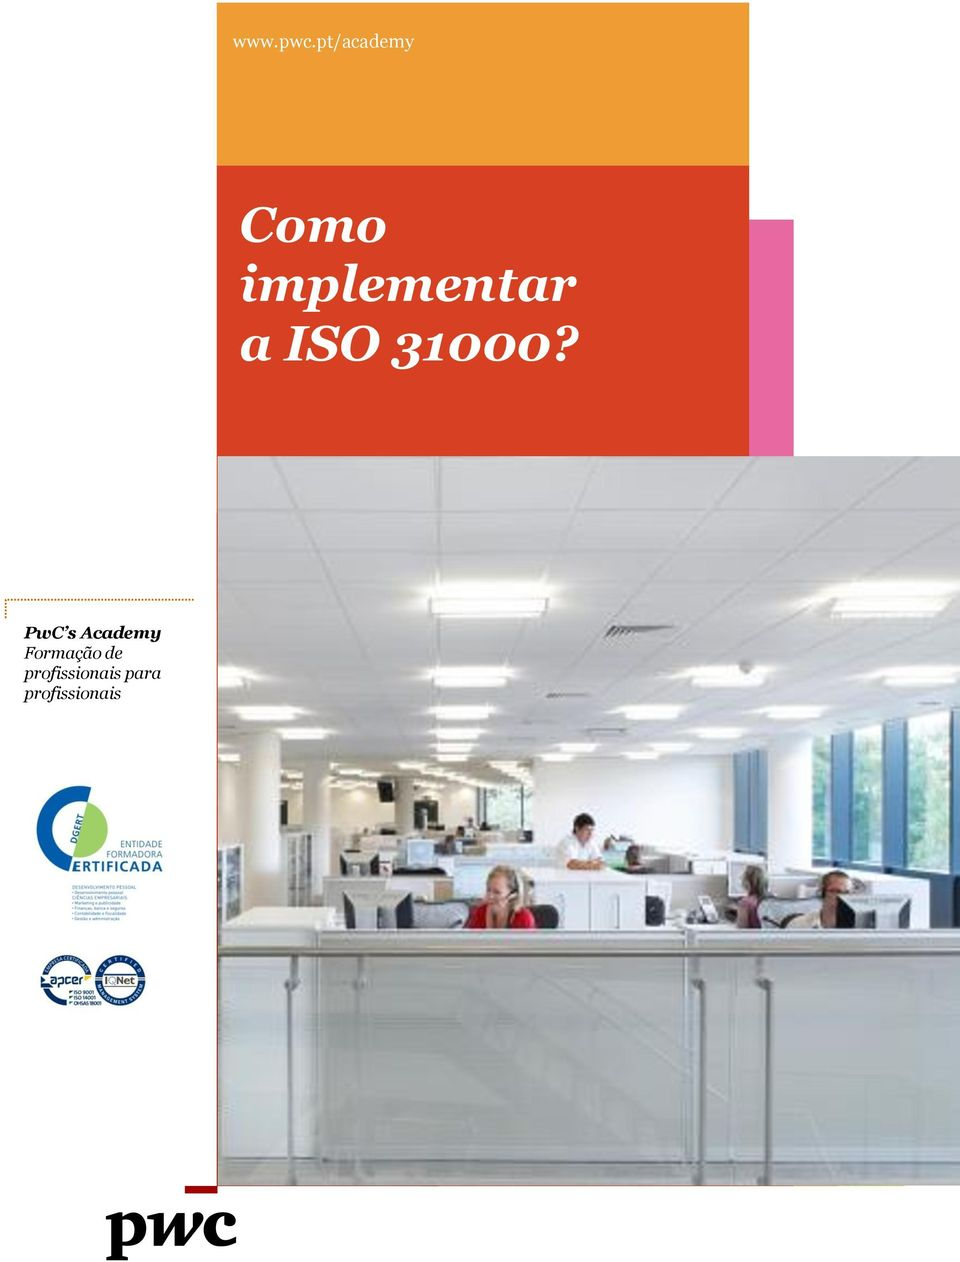 implementar a ISO 31000?